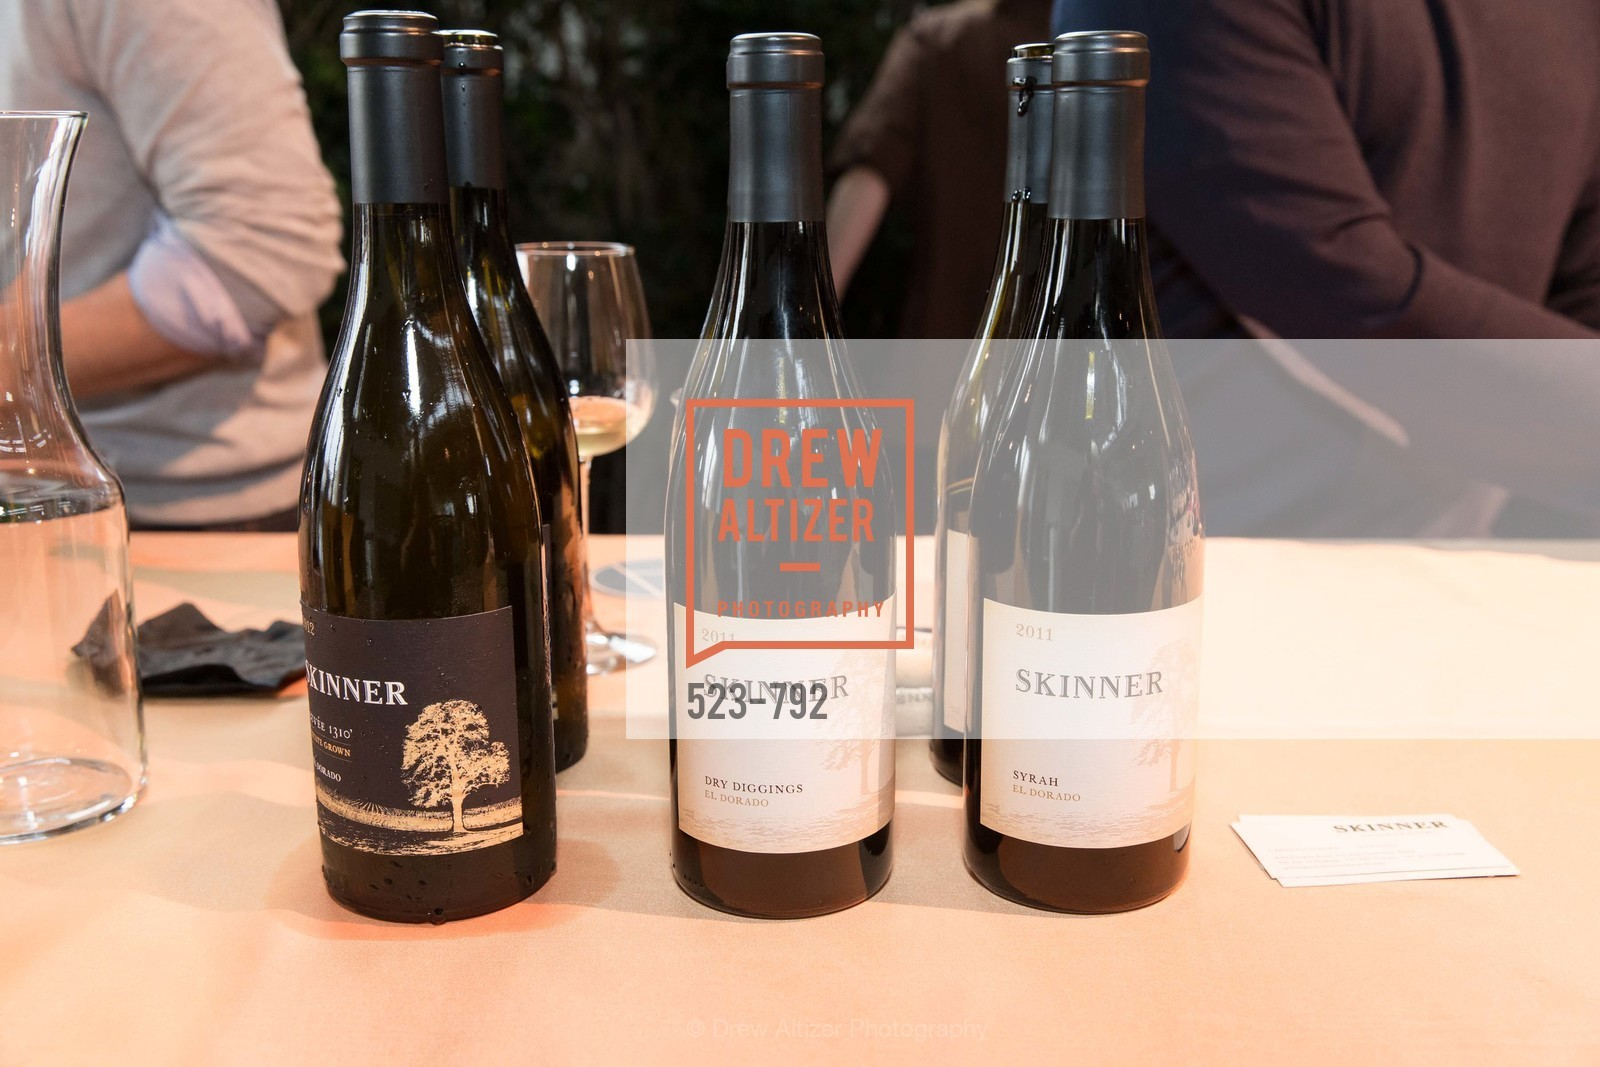 Skinner Vineyards And Winery, MEALS ON WHEELS OF SAN FRANCISCO'S 28th Annual Star Chefs and Vintners Gala, US, April 19th, 2015,Drew Altizer, Drew Altizer Photography, full-service agency, private events, San Francisco photographer, photographer california